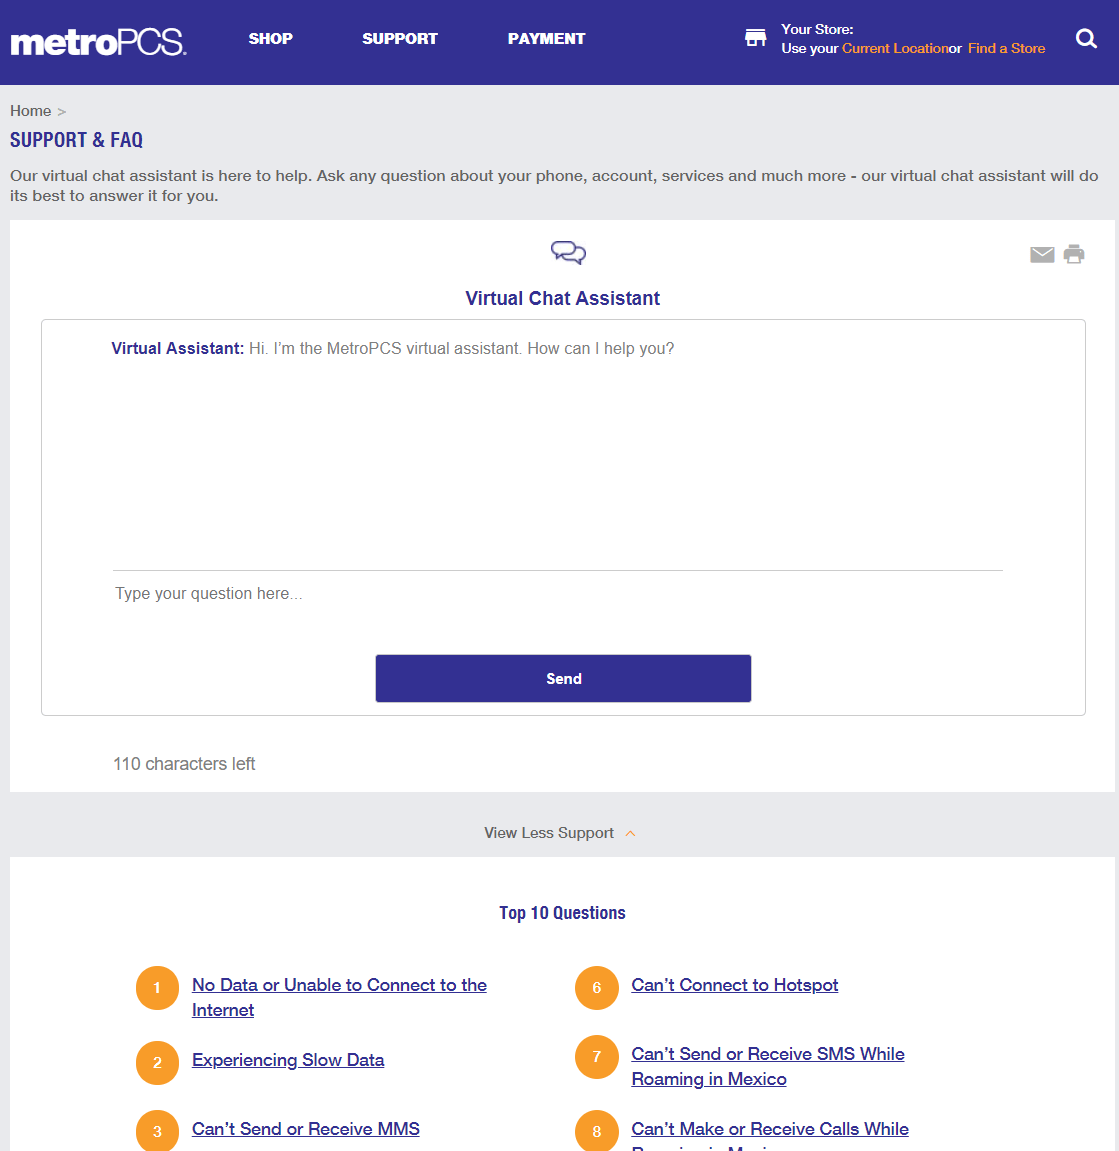 metropcs faqs section